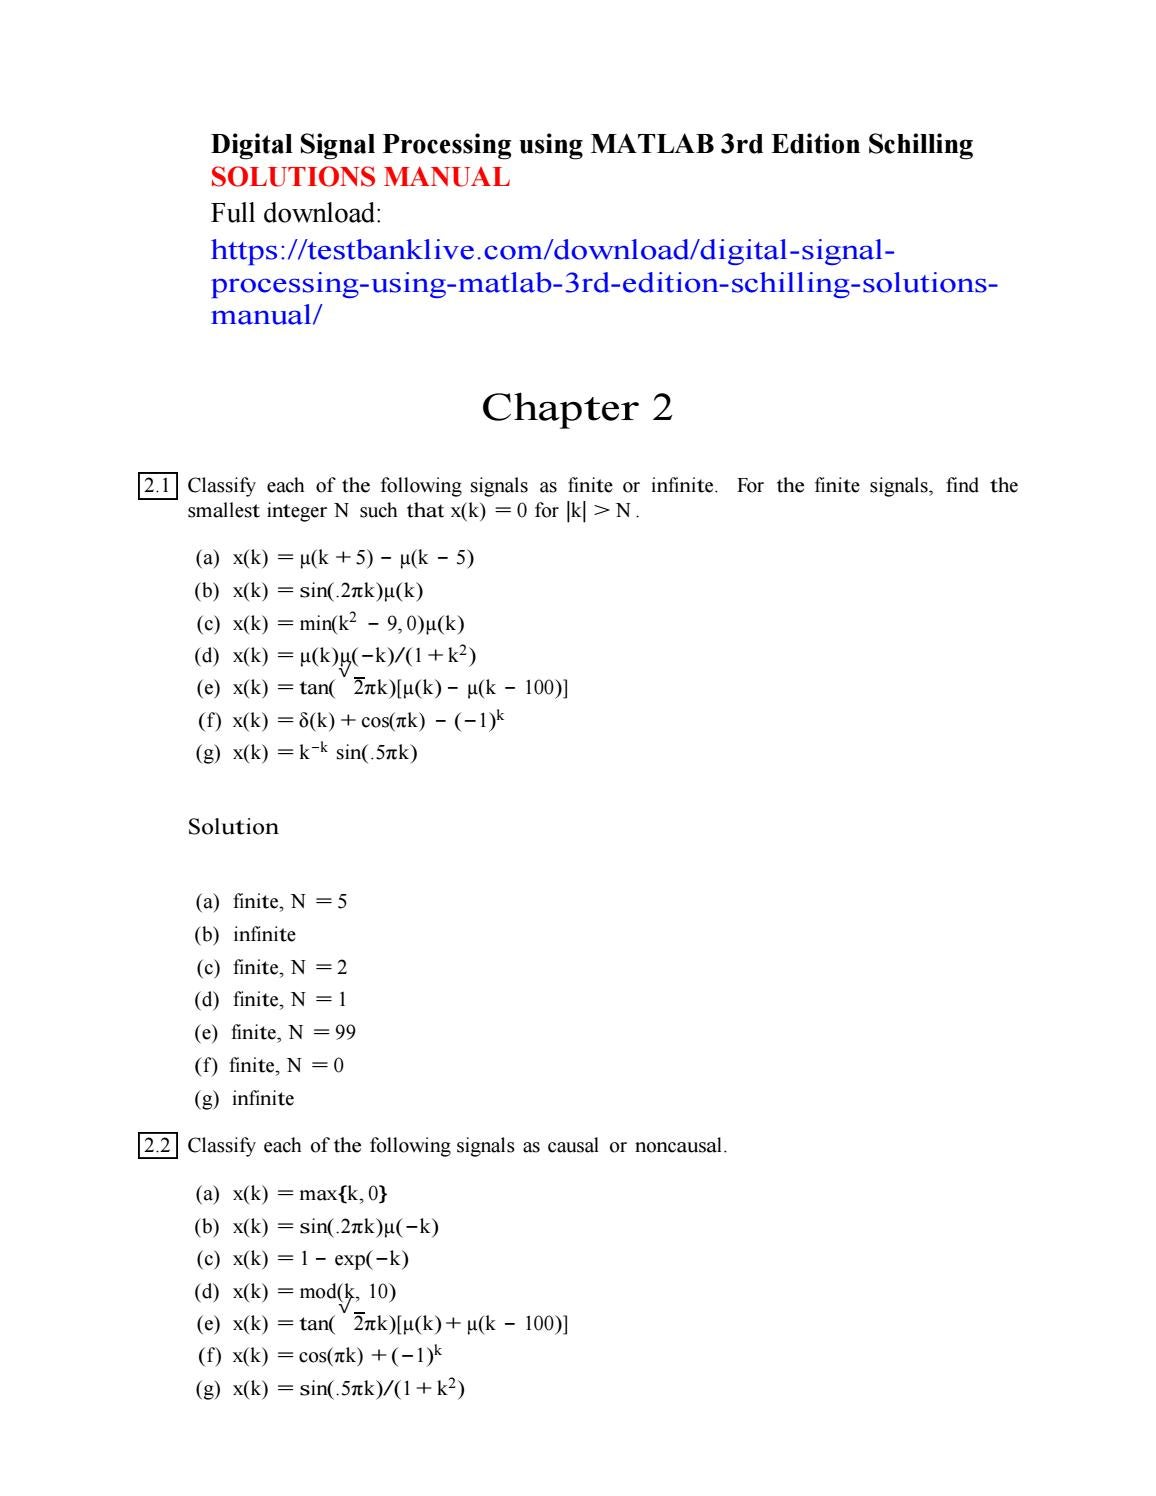 digital signal processing using matlab 3rd edition schilling rh issuu com dsp first second edition solution manual dsp first solution manual pdf